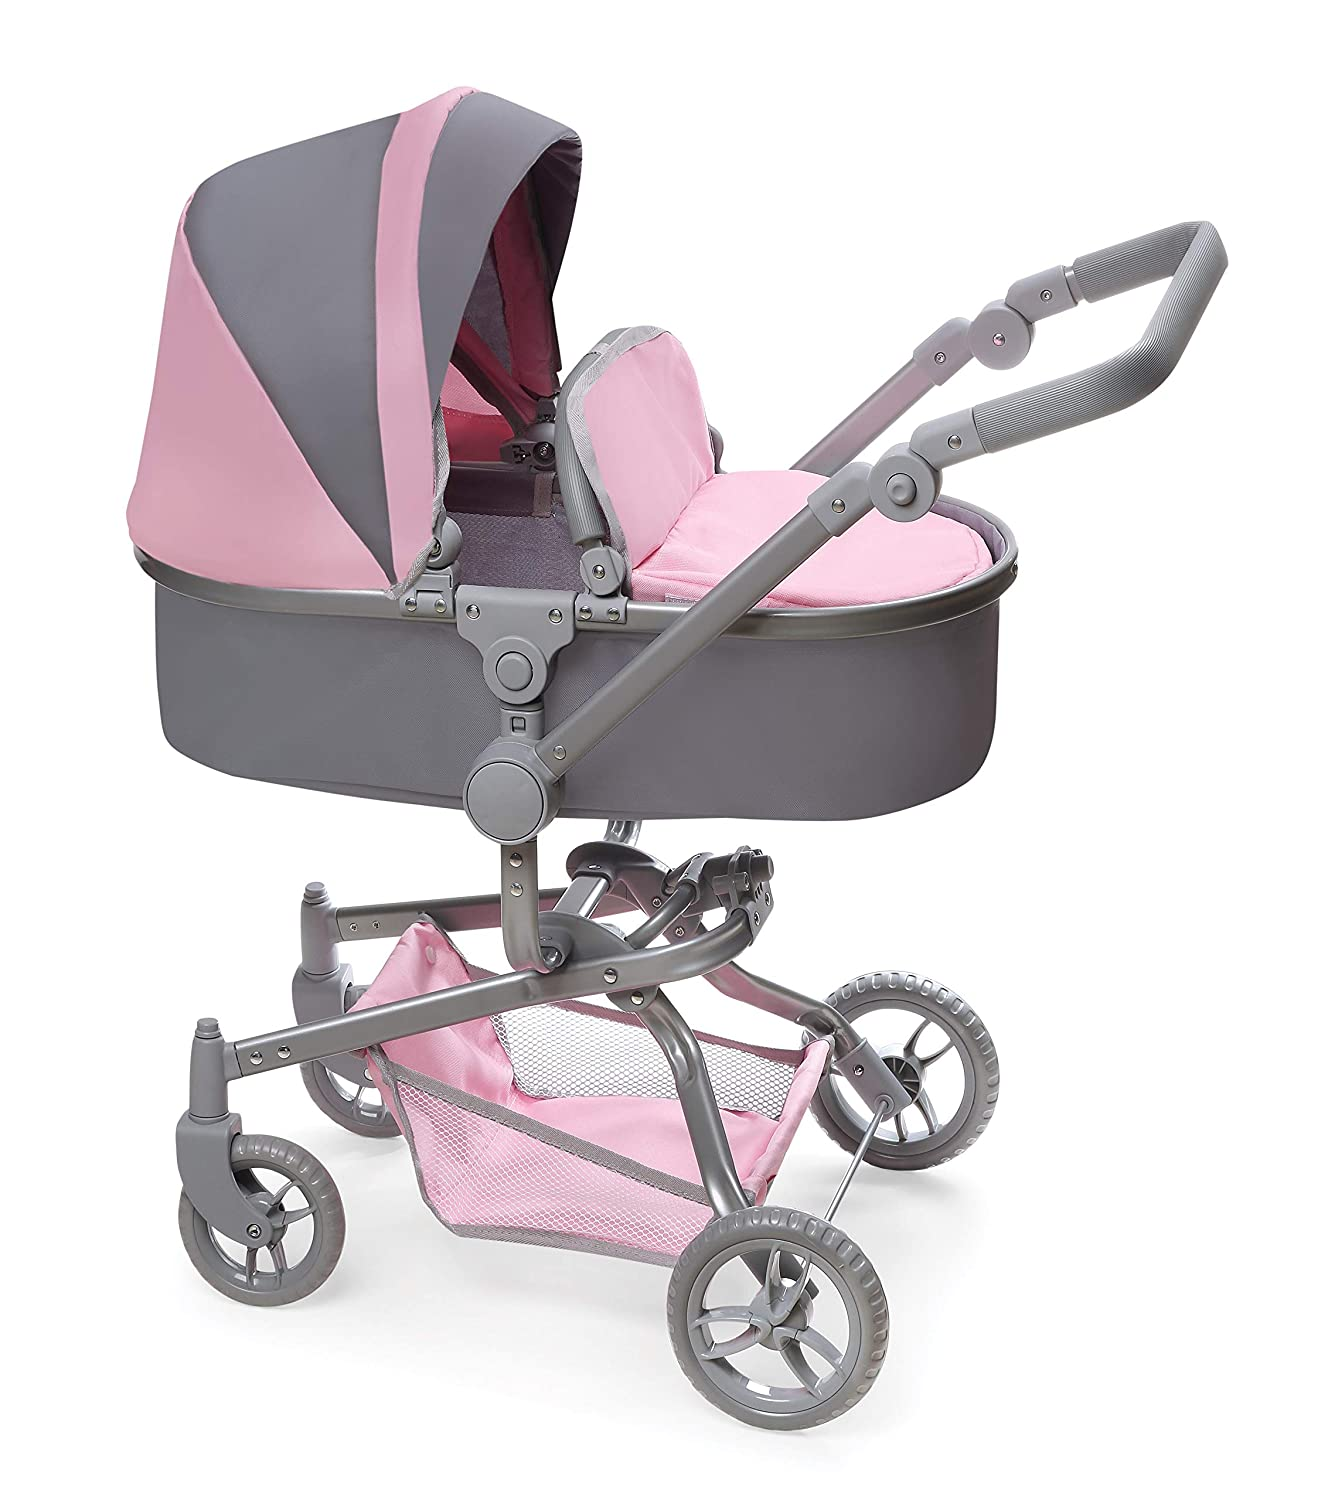 Badger Basket Daydream Multi-Function Single Doll Pram and Stroller (fits American Girl Dolls)